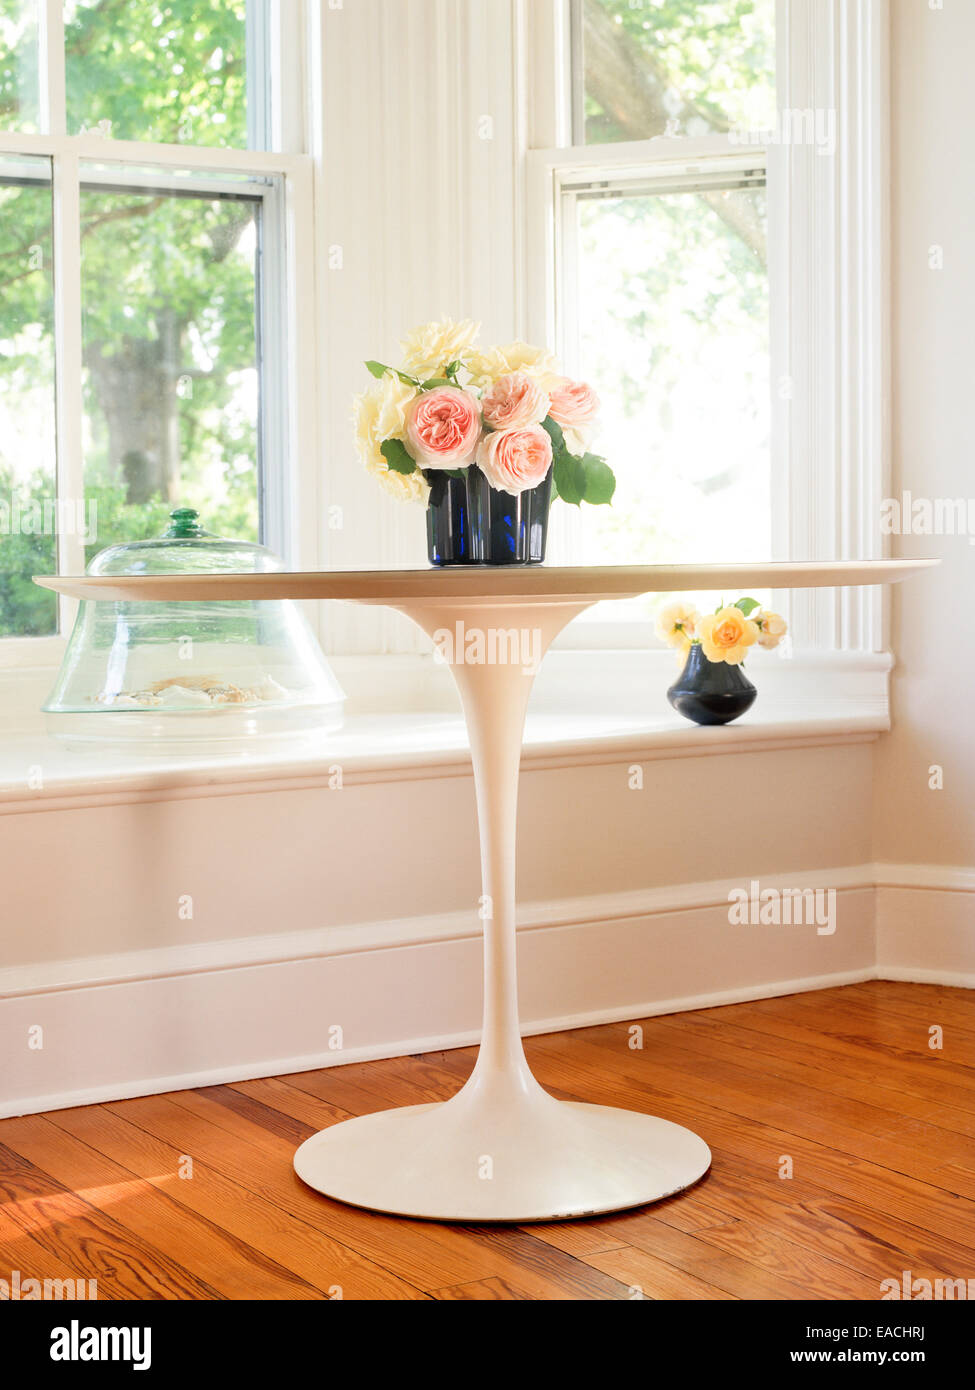 Eero Saarinen table avec des roses Photo Stock